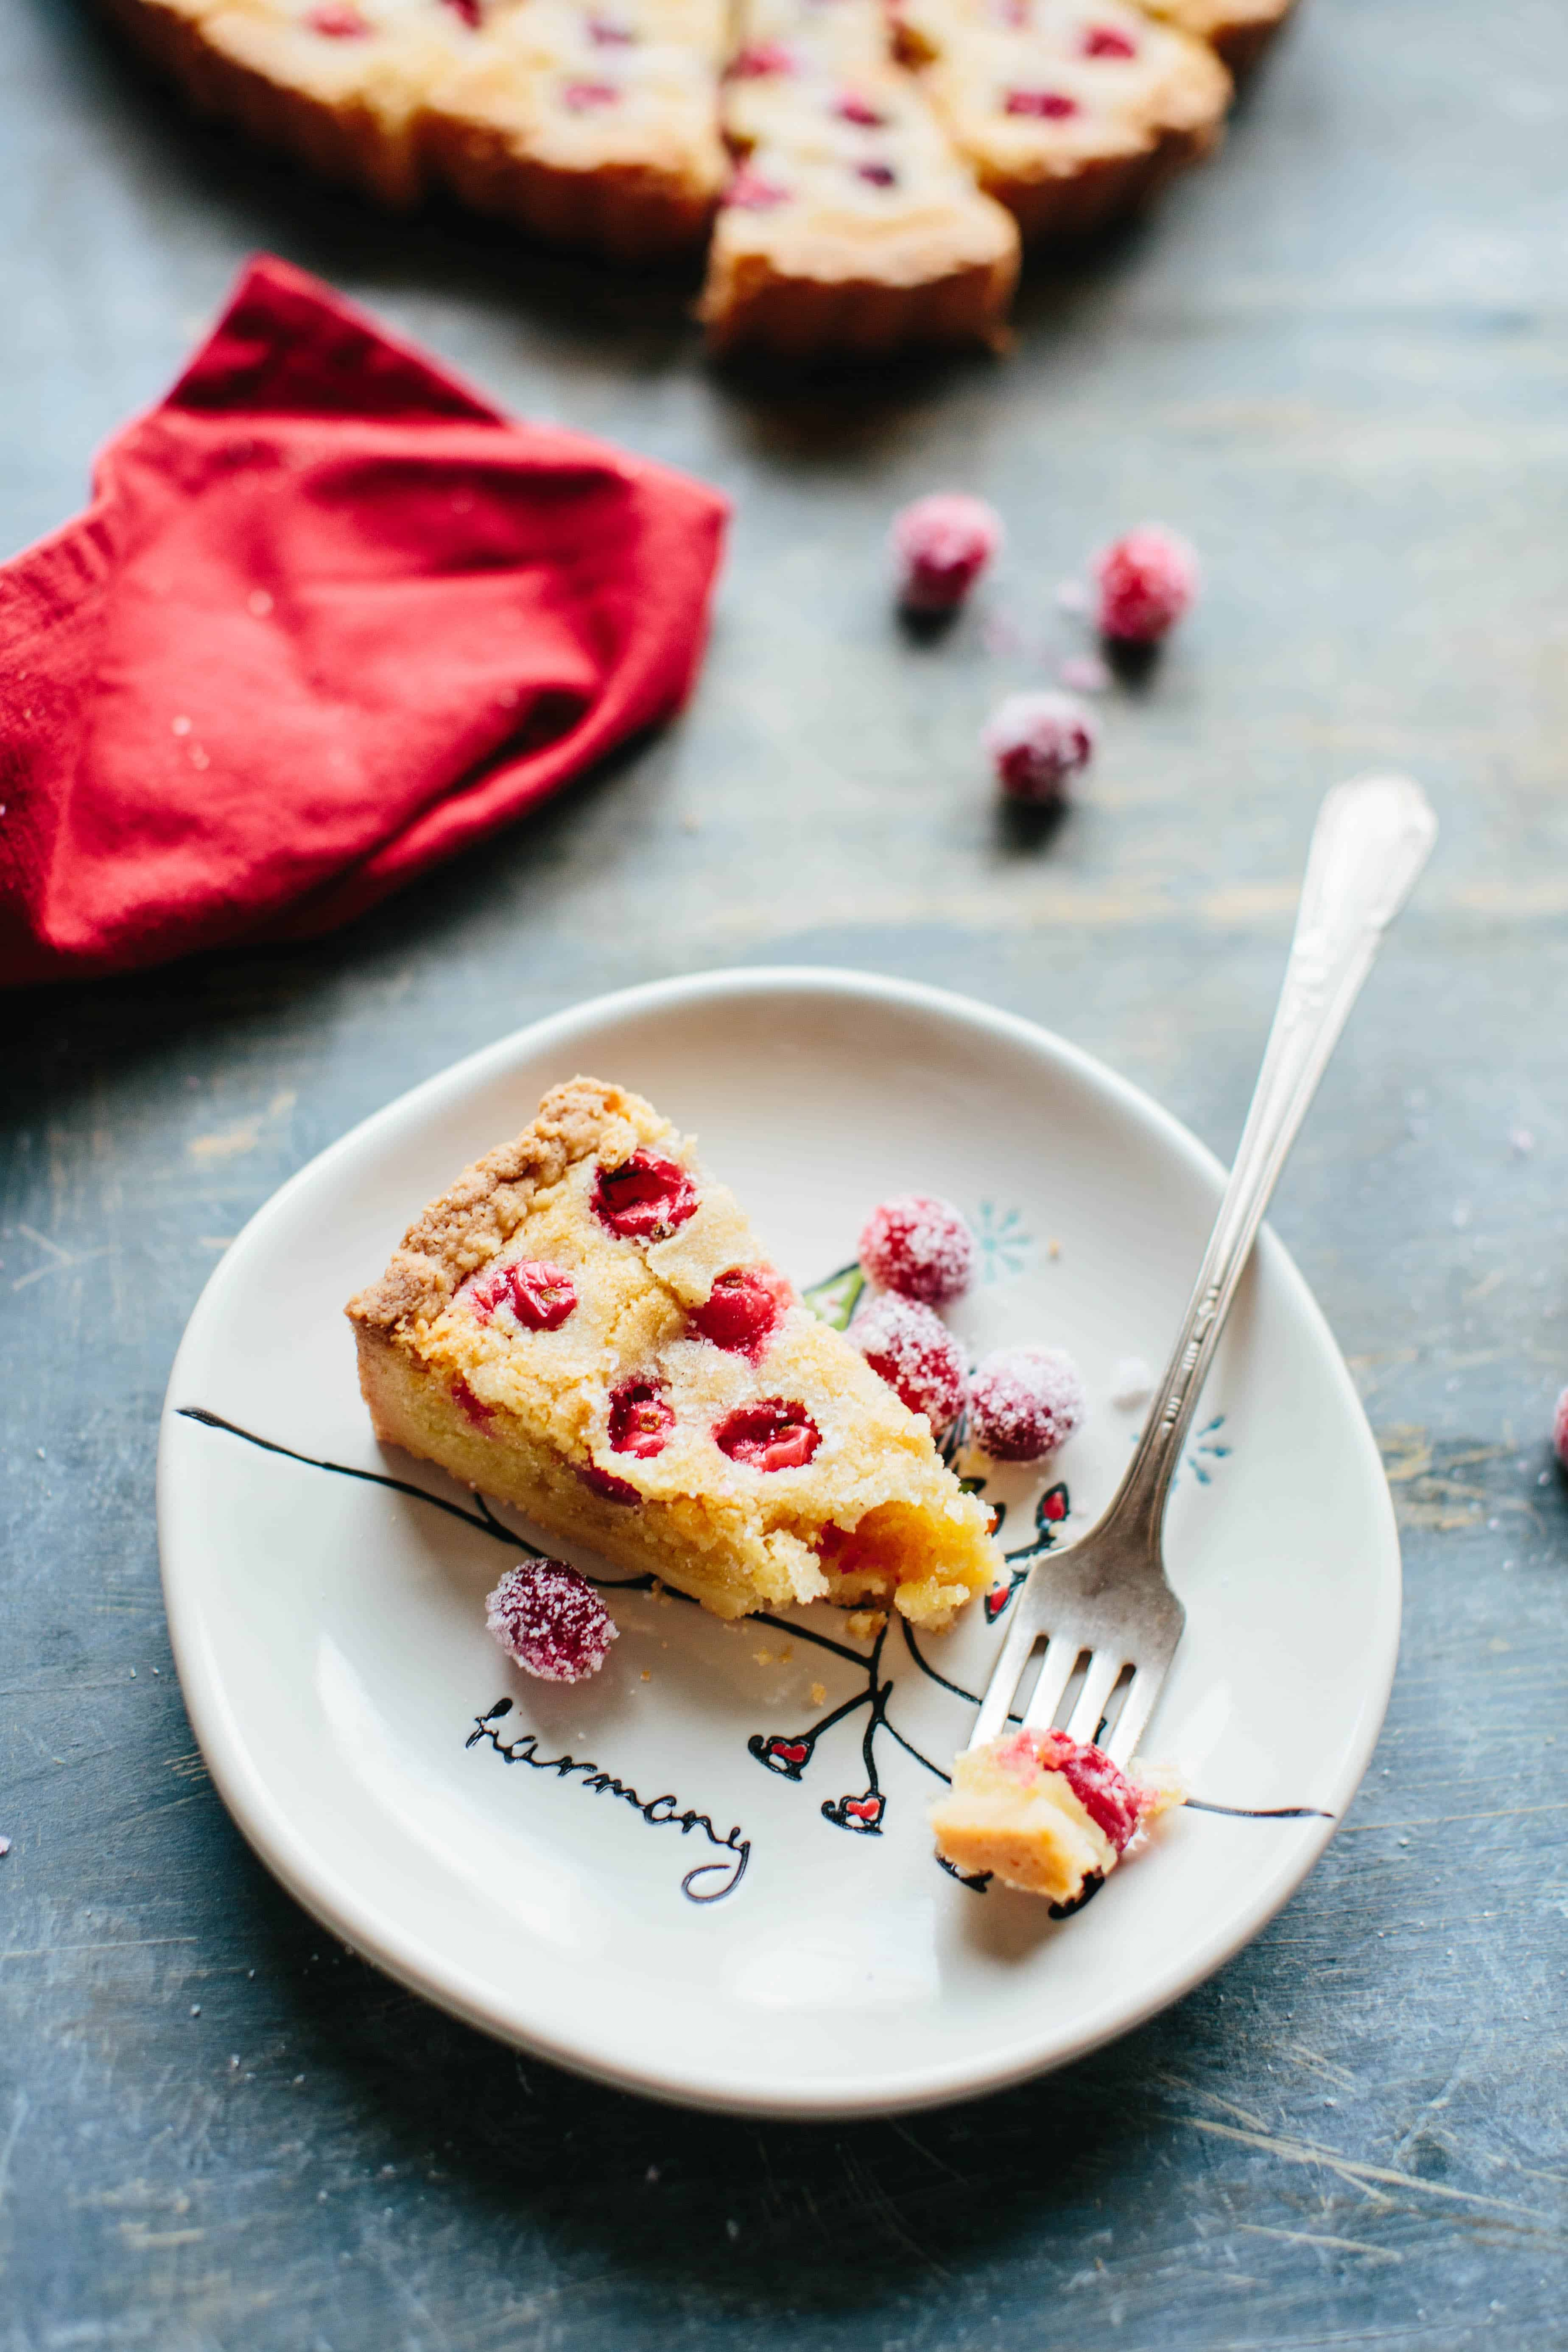 A piece of tart on a plate, with a fork taking a piece